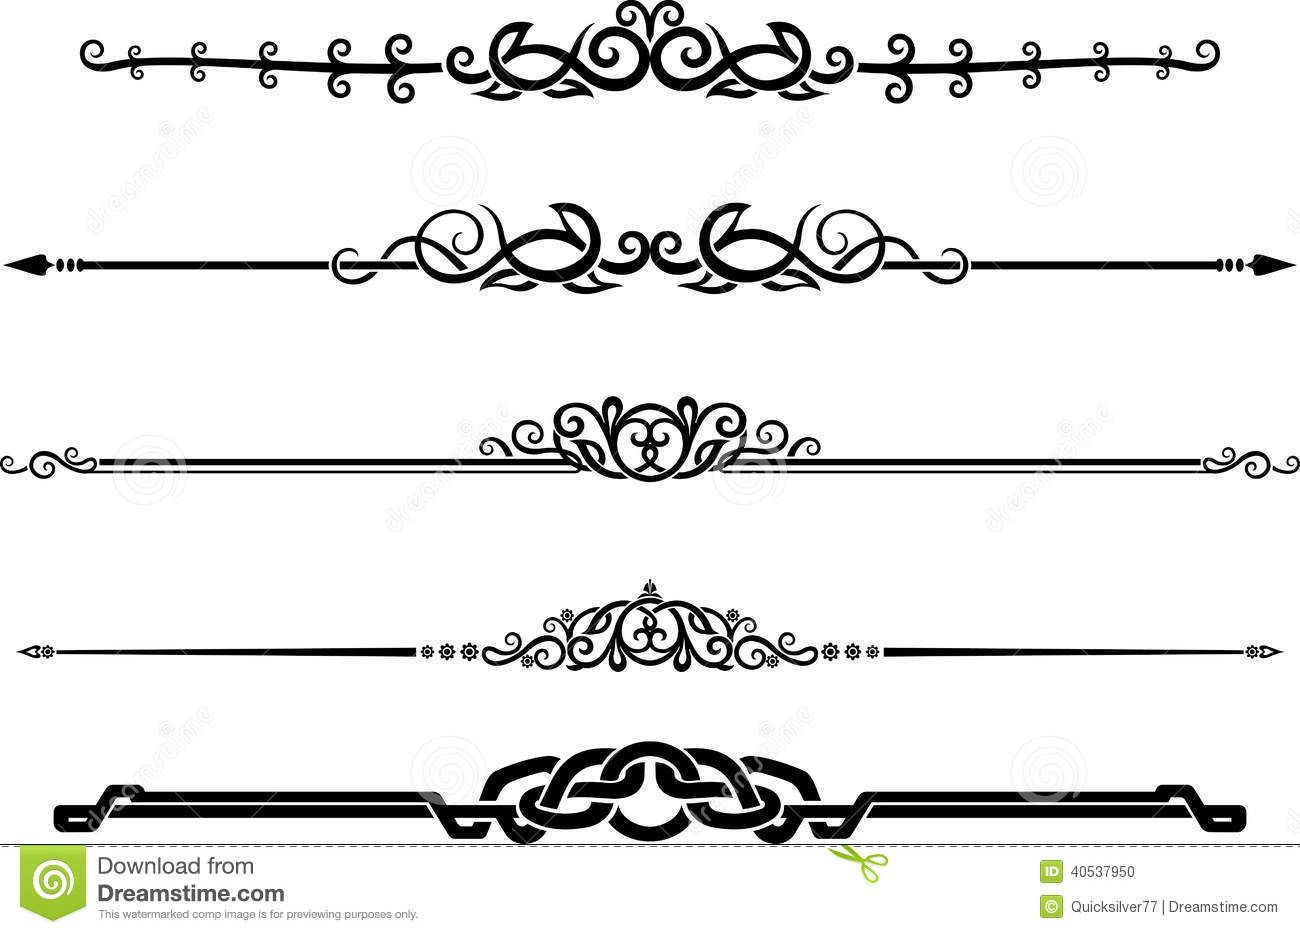 Basic Line Designs : Horizontal line designs google search cricut